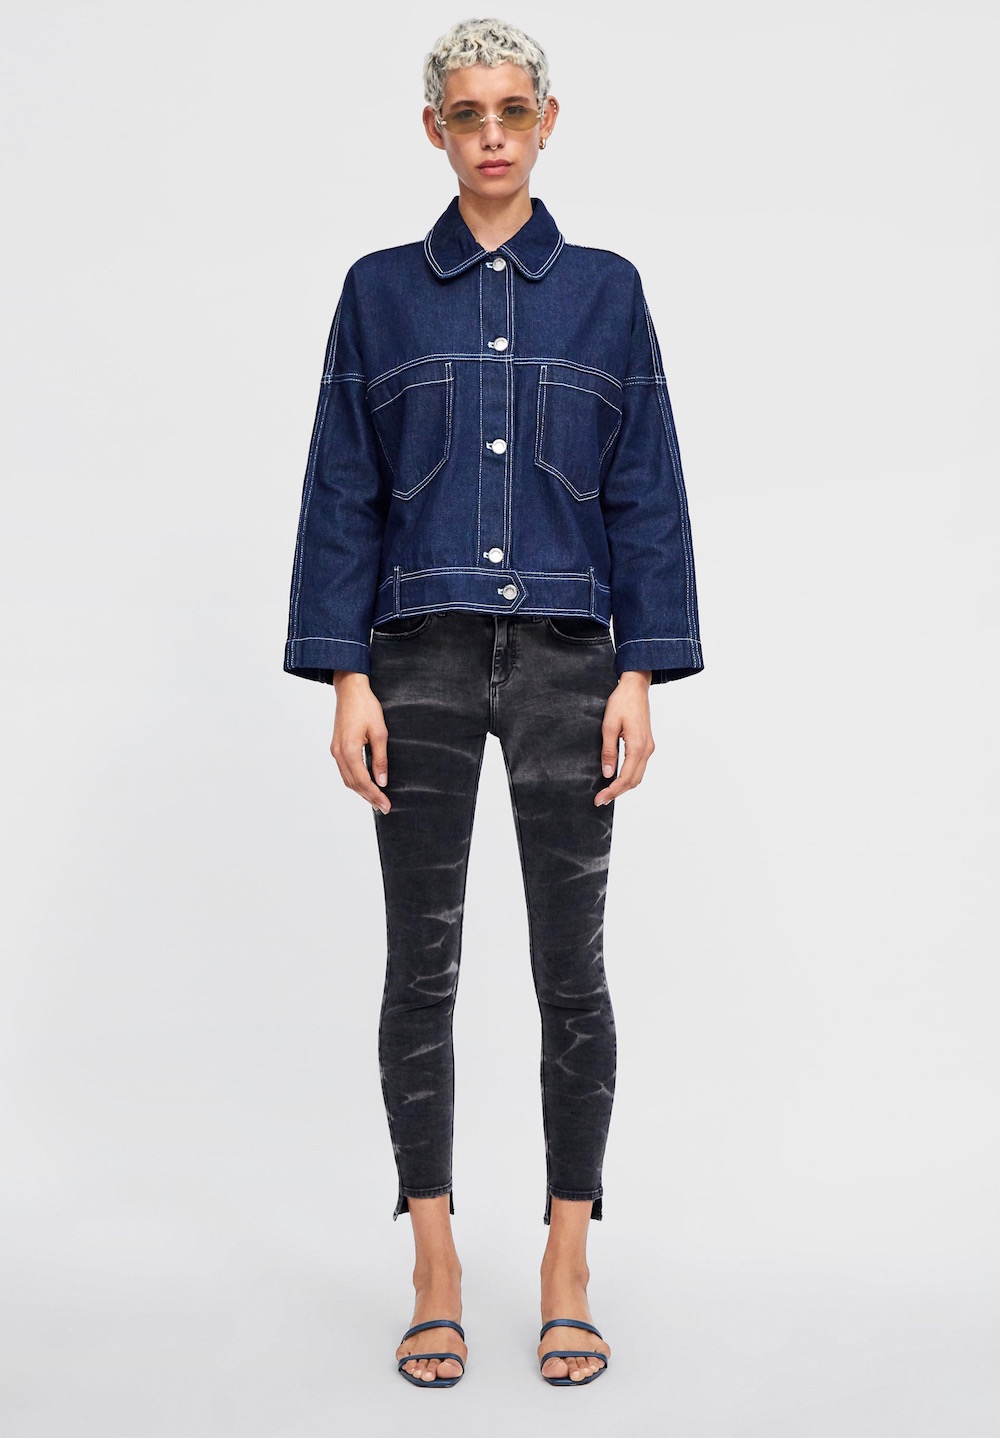 b1a88139d9 26 Best Black Jeans to Wear This Winter - theFashionSpot